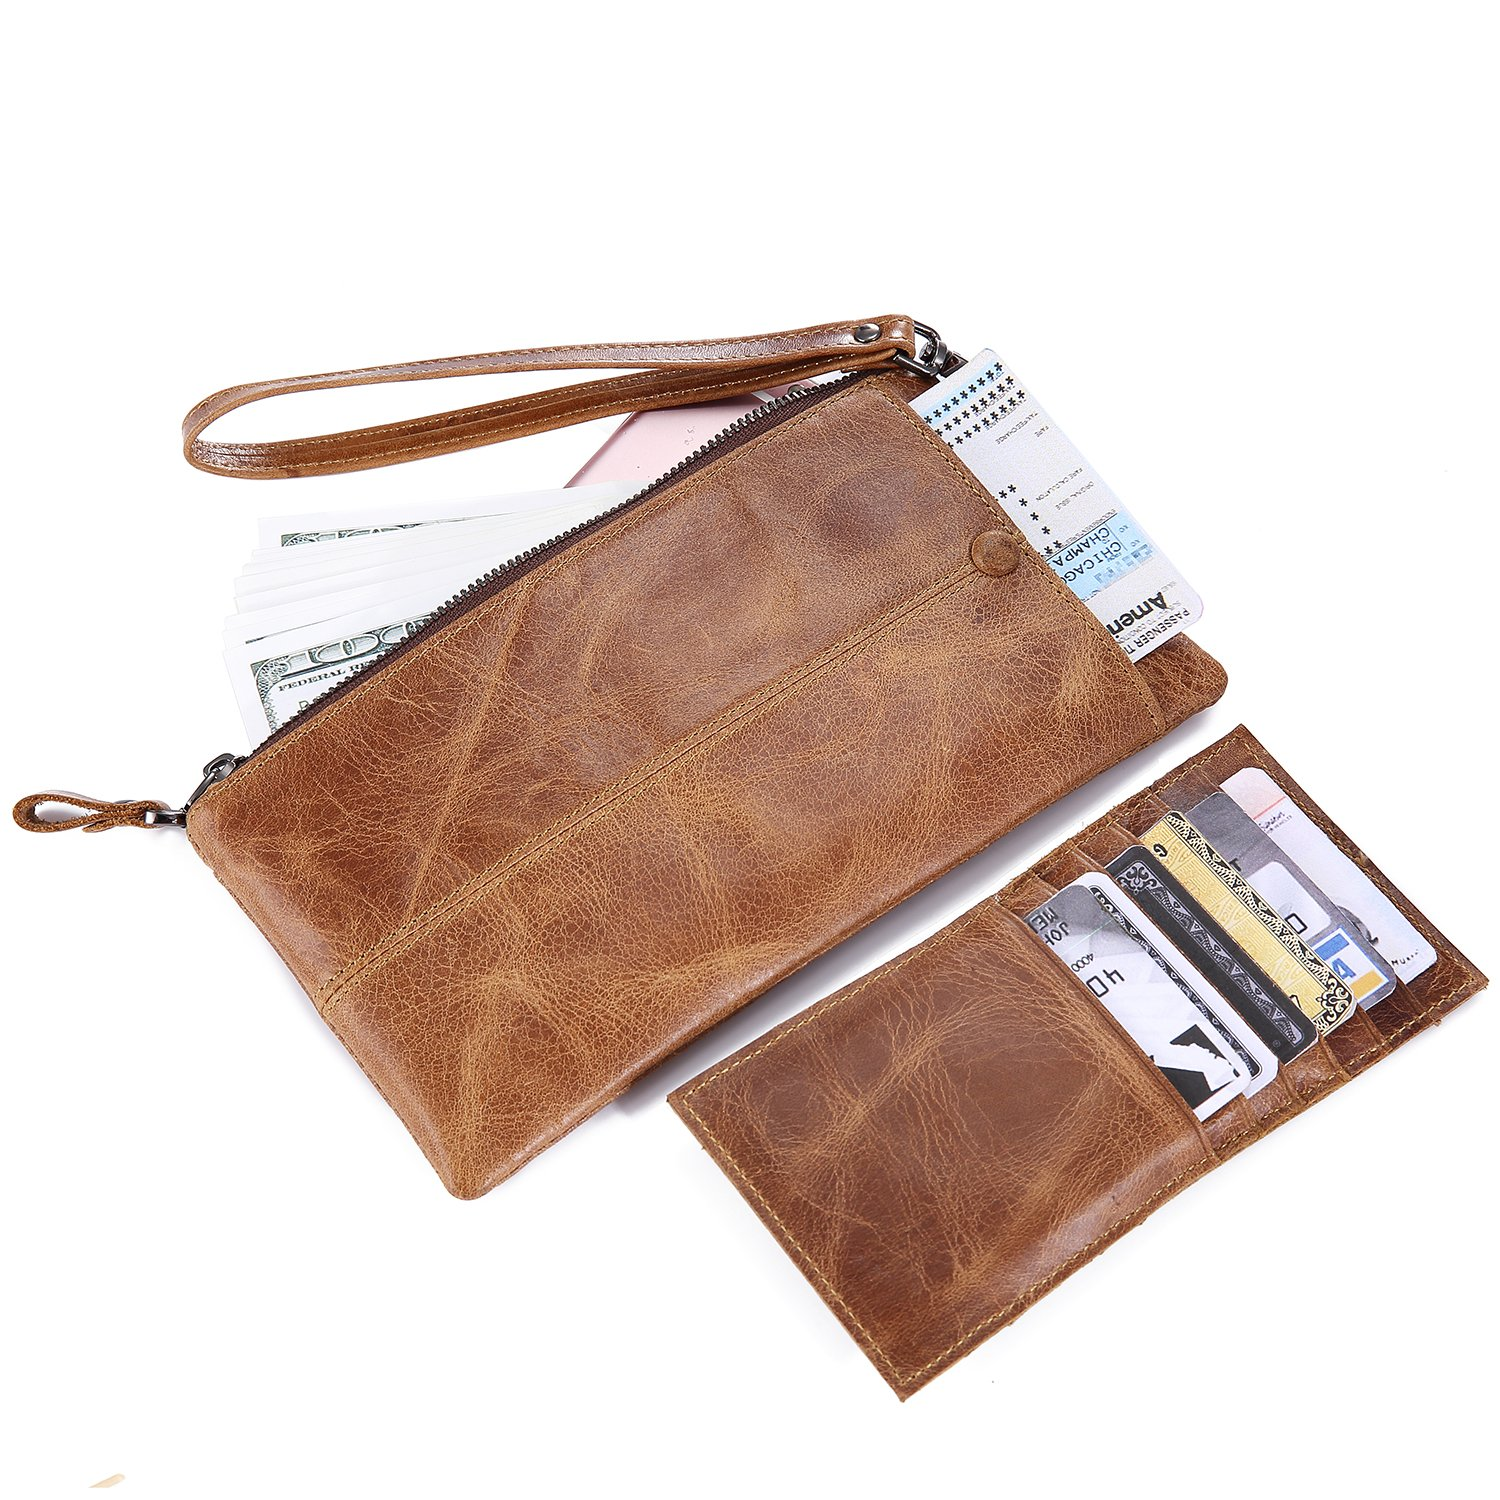 IVESIGN Zipper Wallet RFID Blocking Credit Card Holder Genuine Leather With Wristlet by IVESIGN (Image #5)